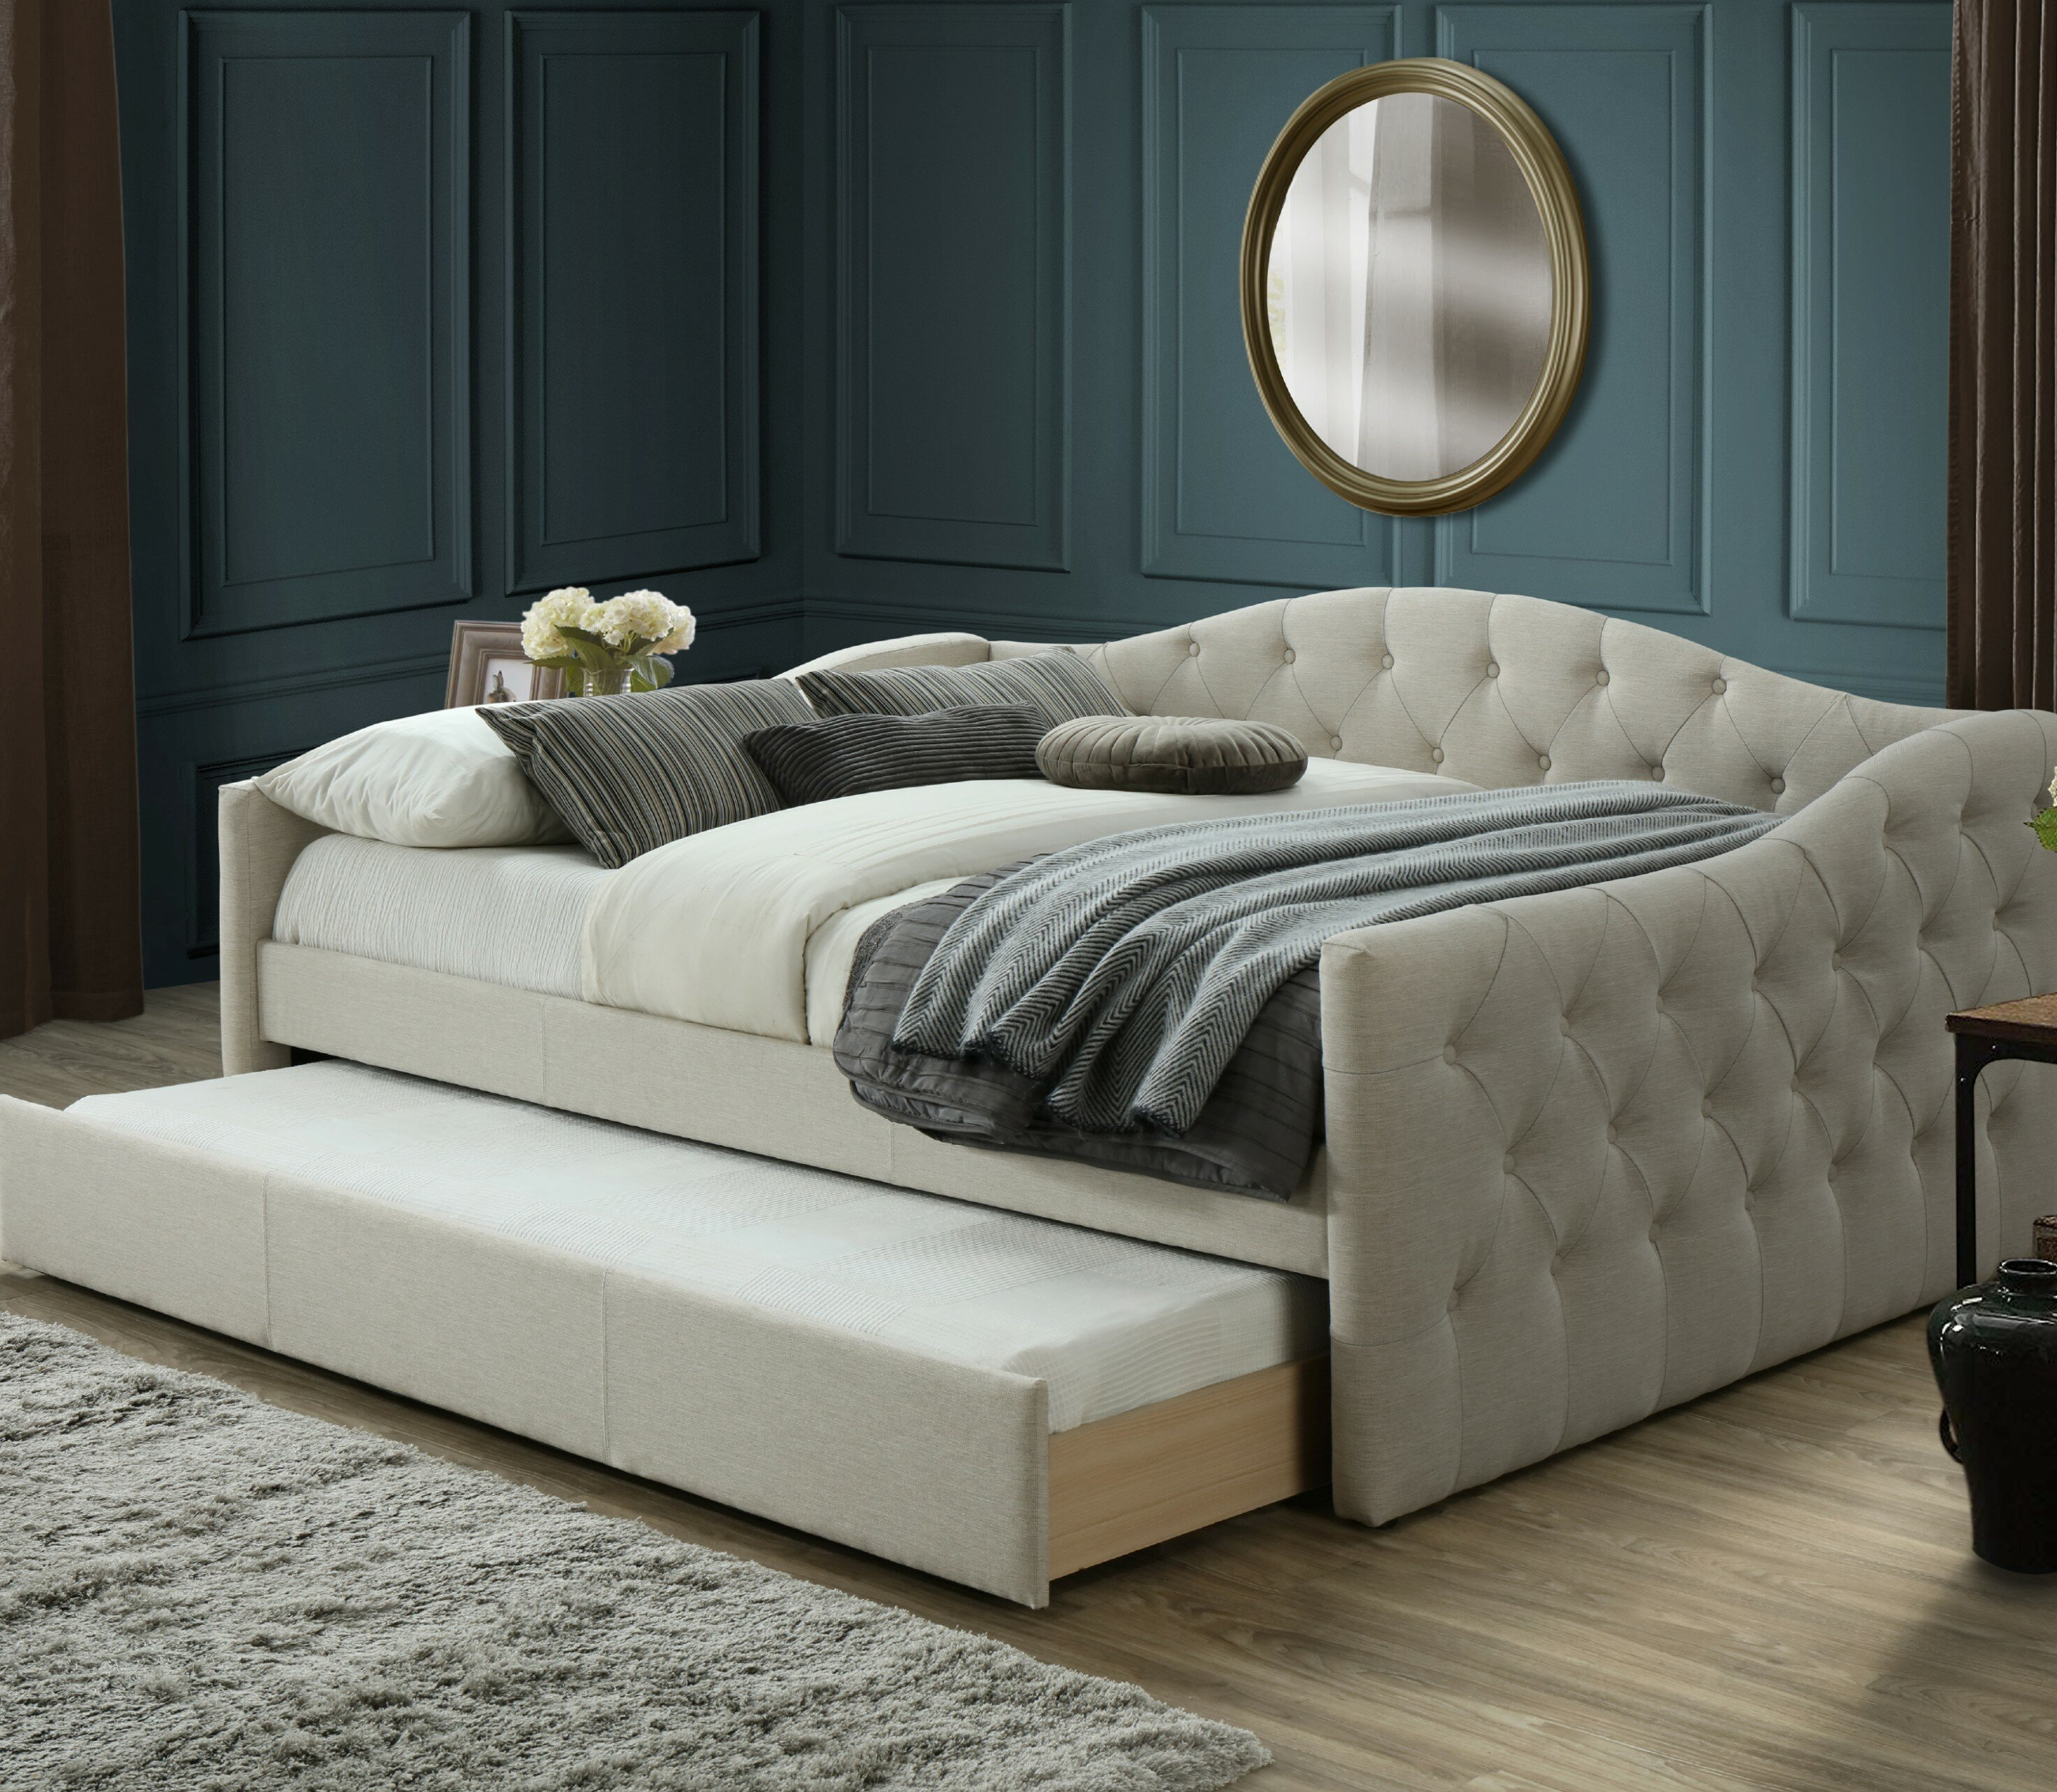 - Hollandsworth Queen Day Bed With Trundle & Reviews Birch Lane